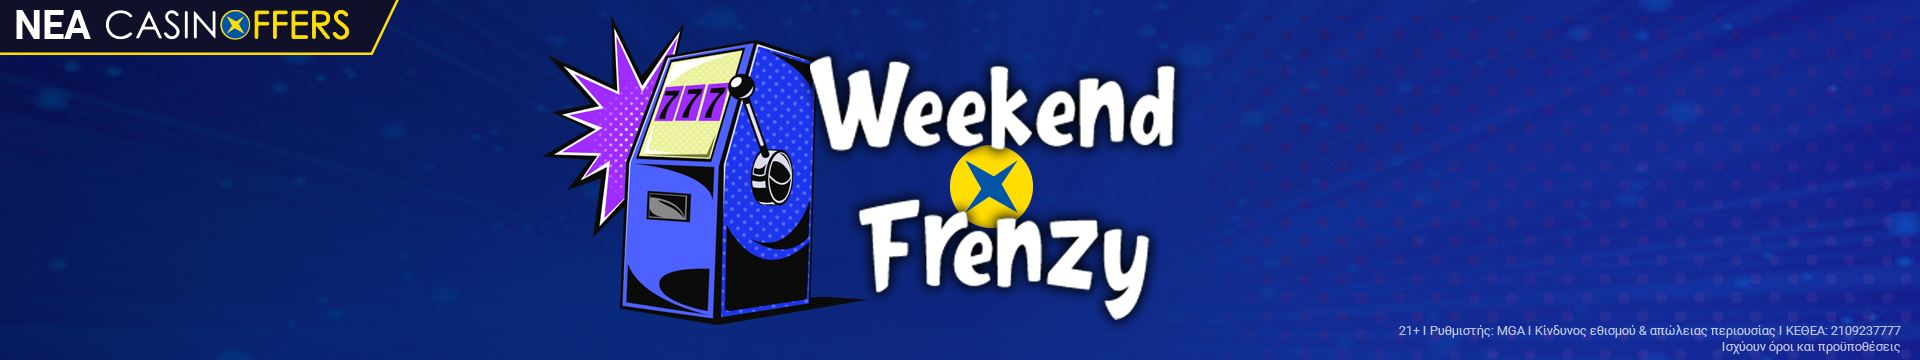 Weekend_Frenzy